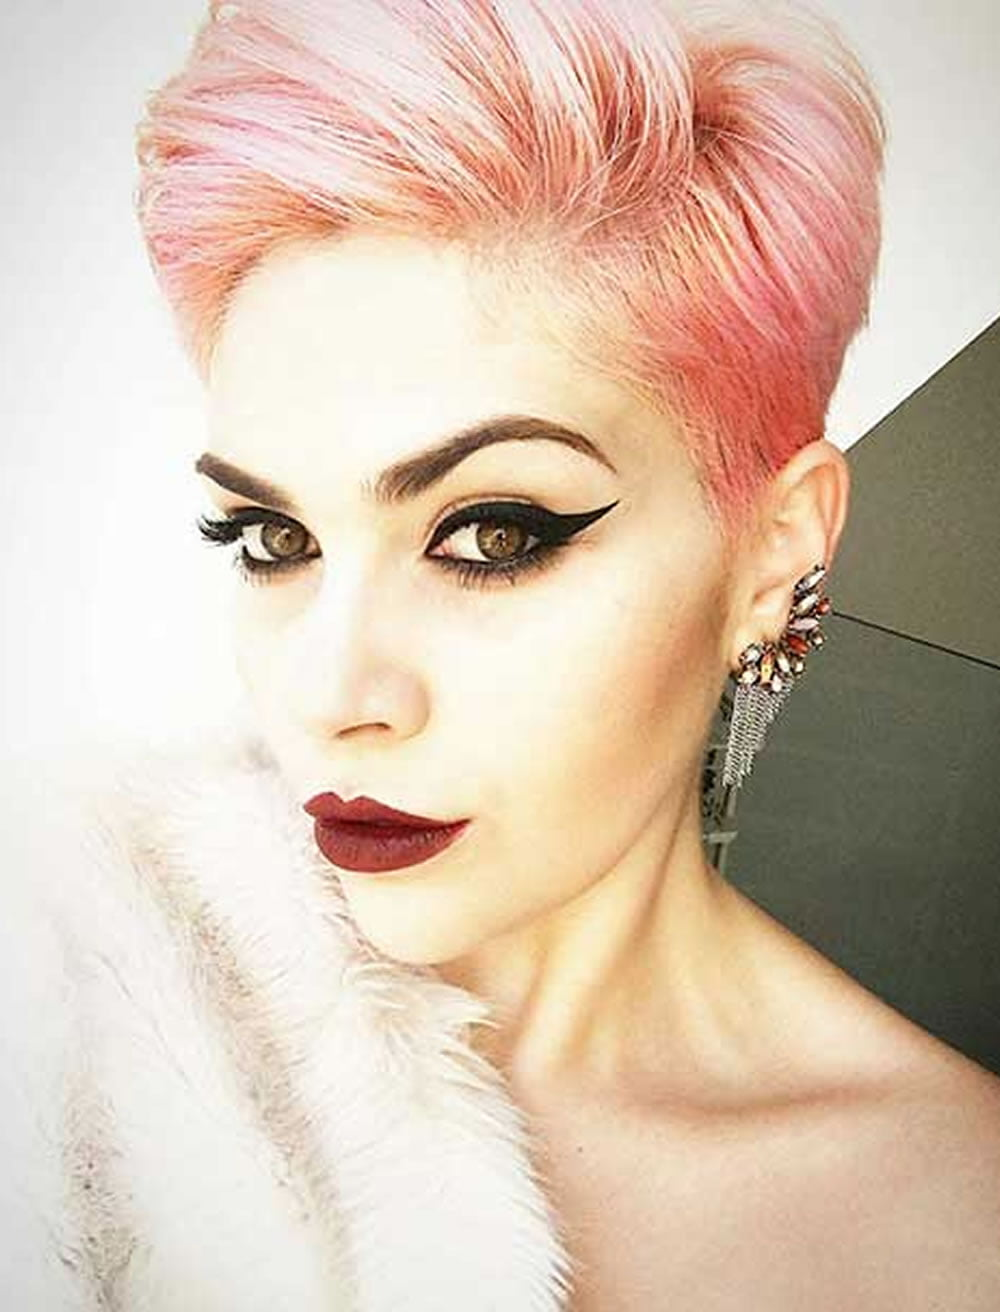 53 The Coolest Short Hairstyles and Hair Colors for Women ...